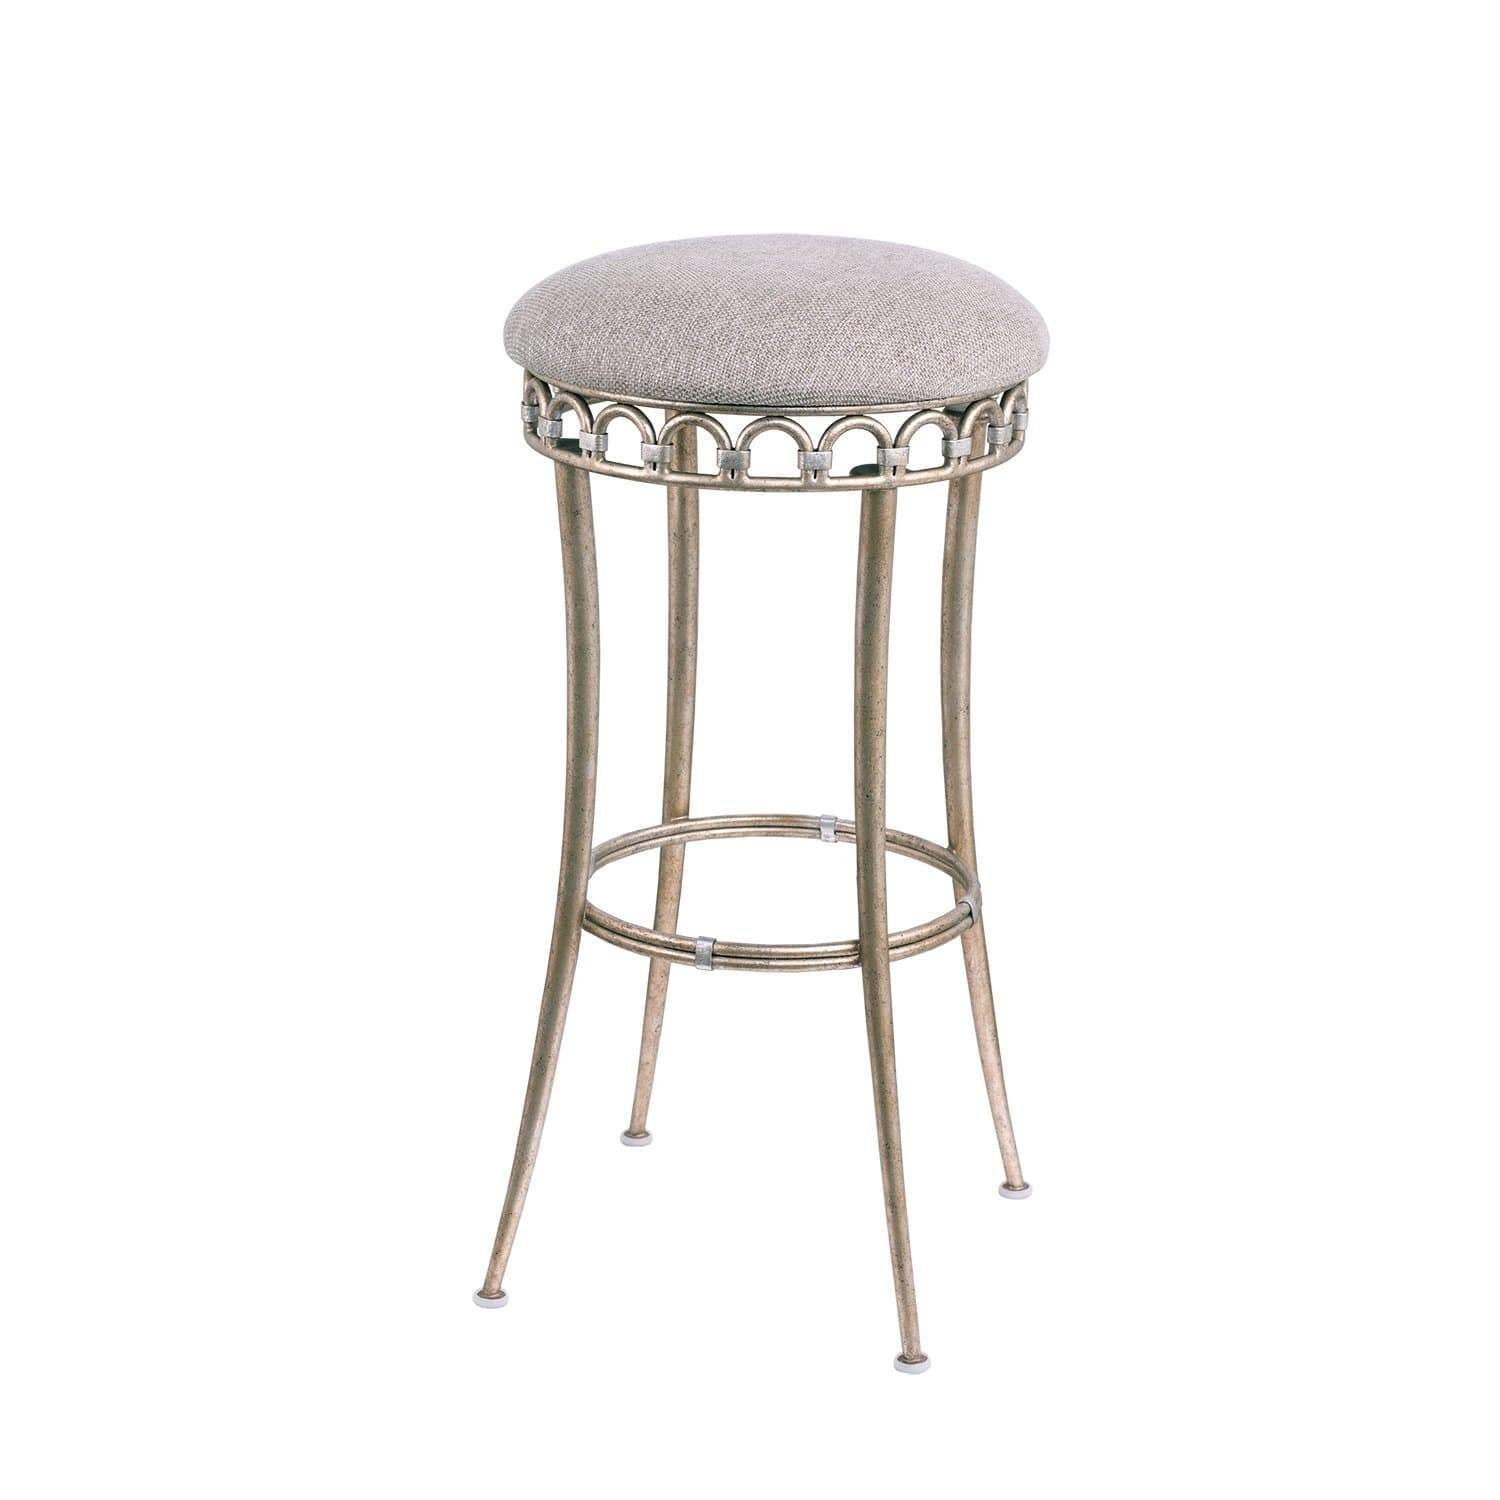 Kalco Lighting Bar Stools Platinum Biscayne Pub Chair By Kalco Lighting 800204